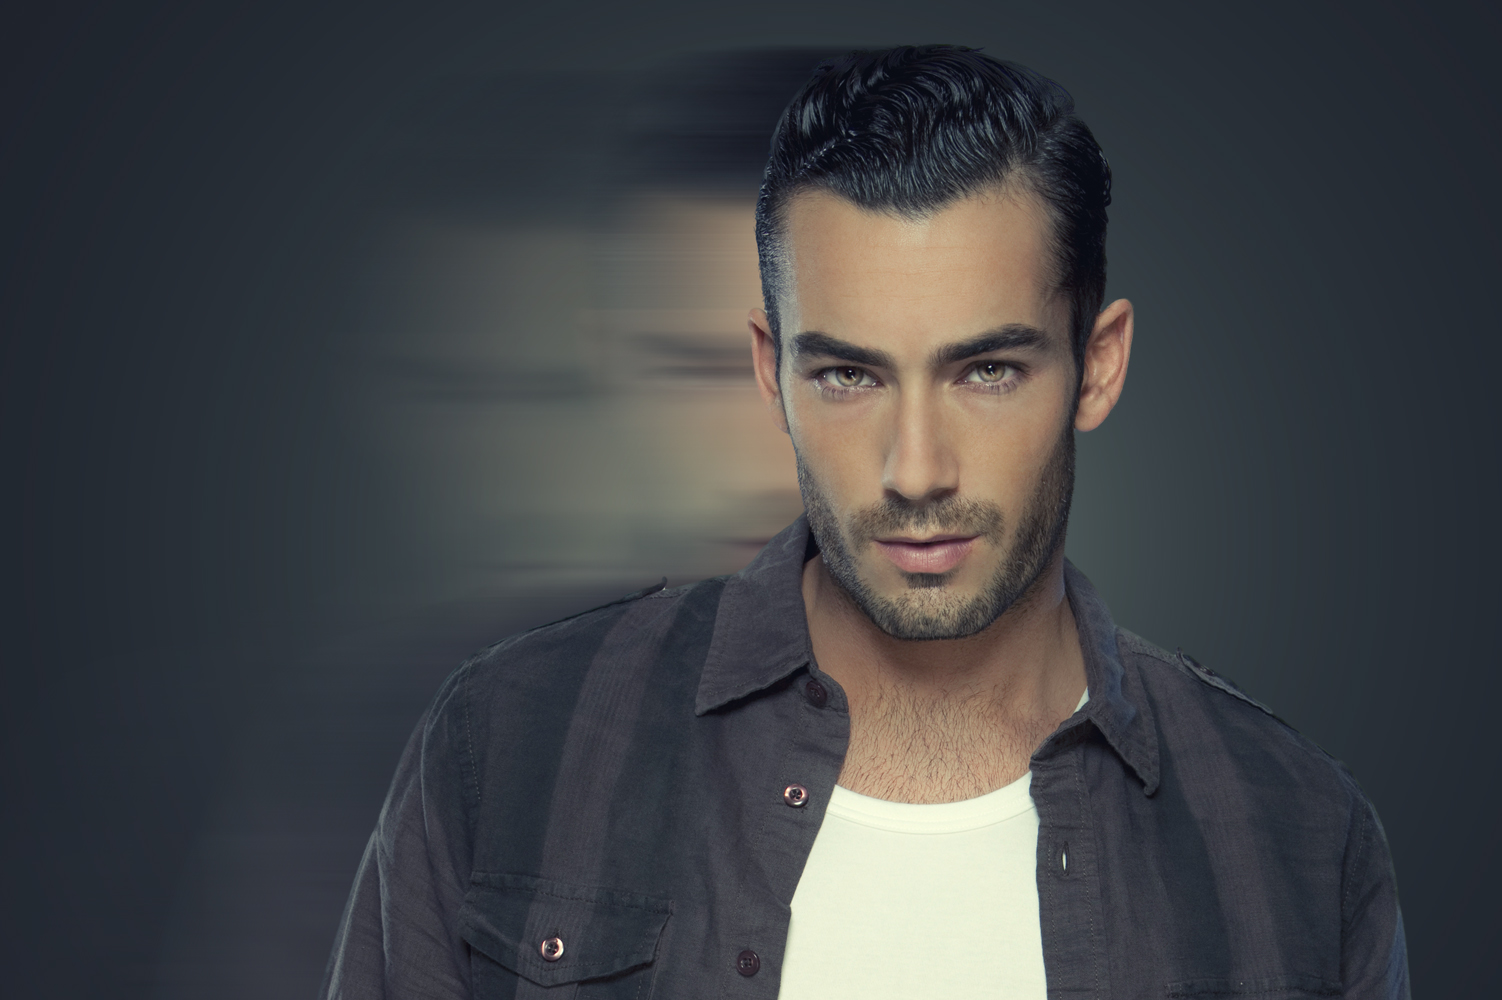 THE MOST BEAUTIFUL PEOPLE ON EARTH: AARON DIAZ